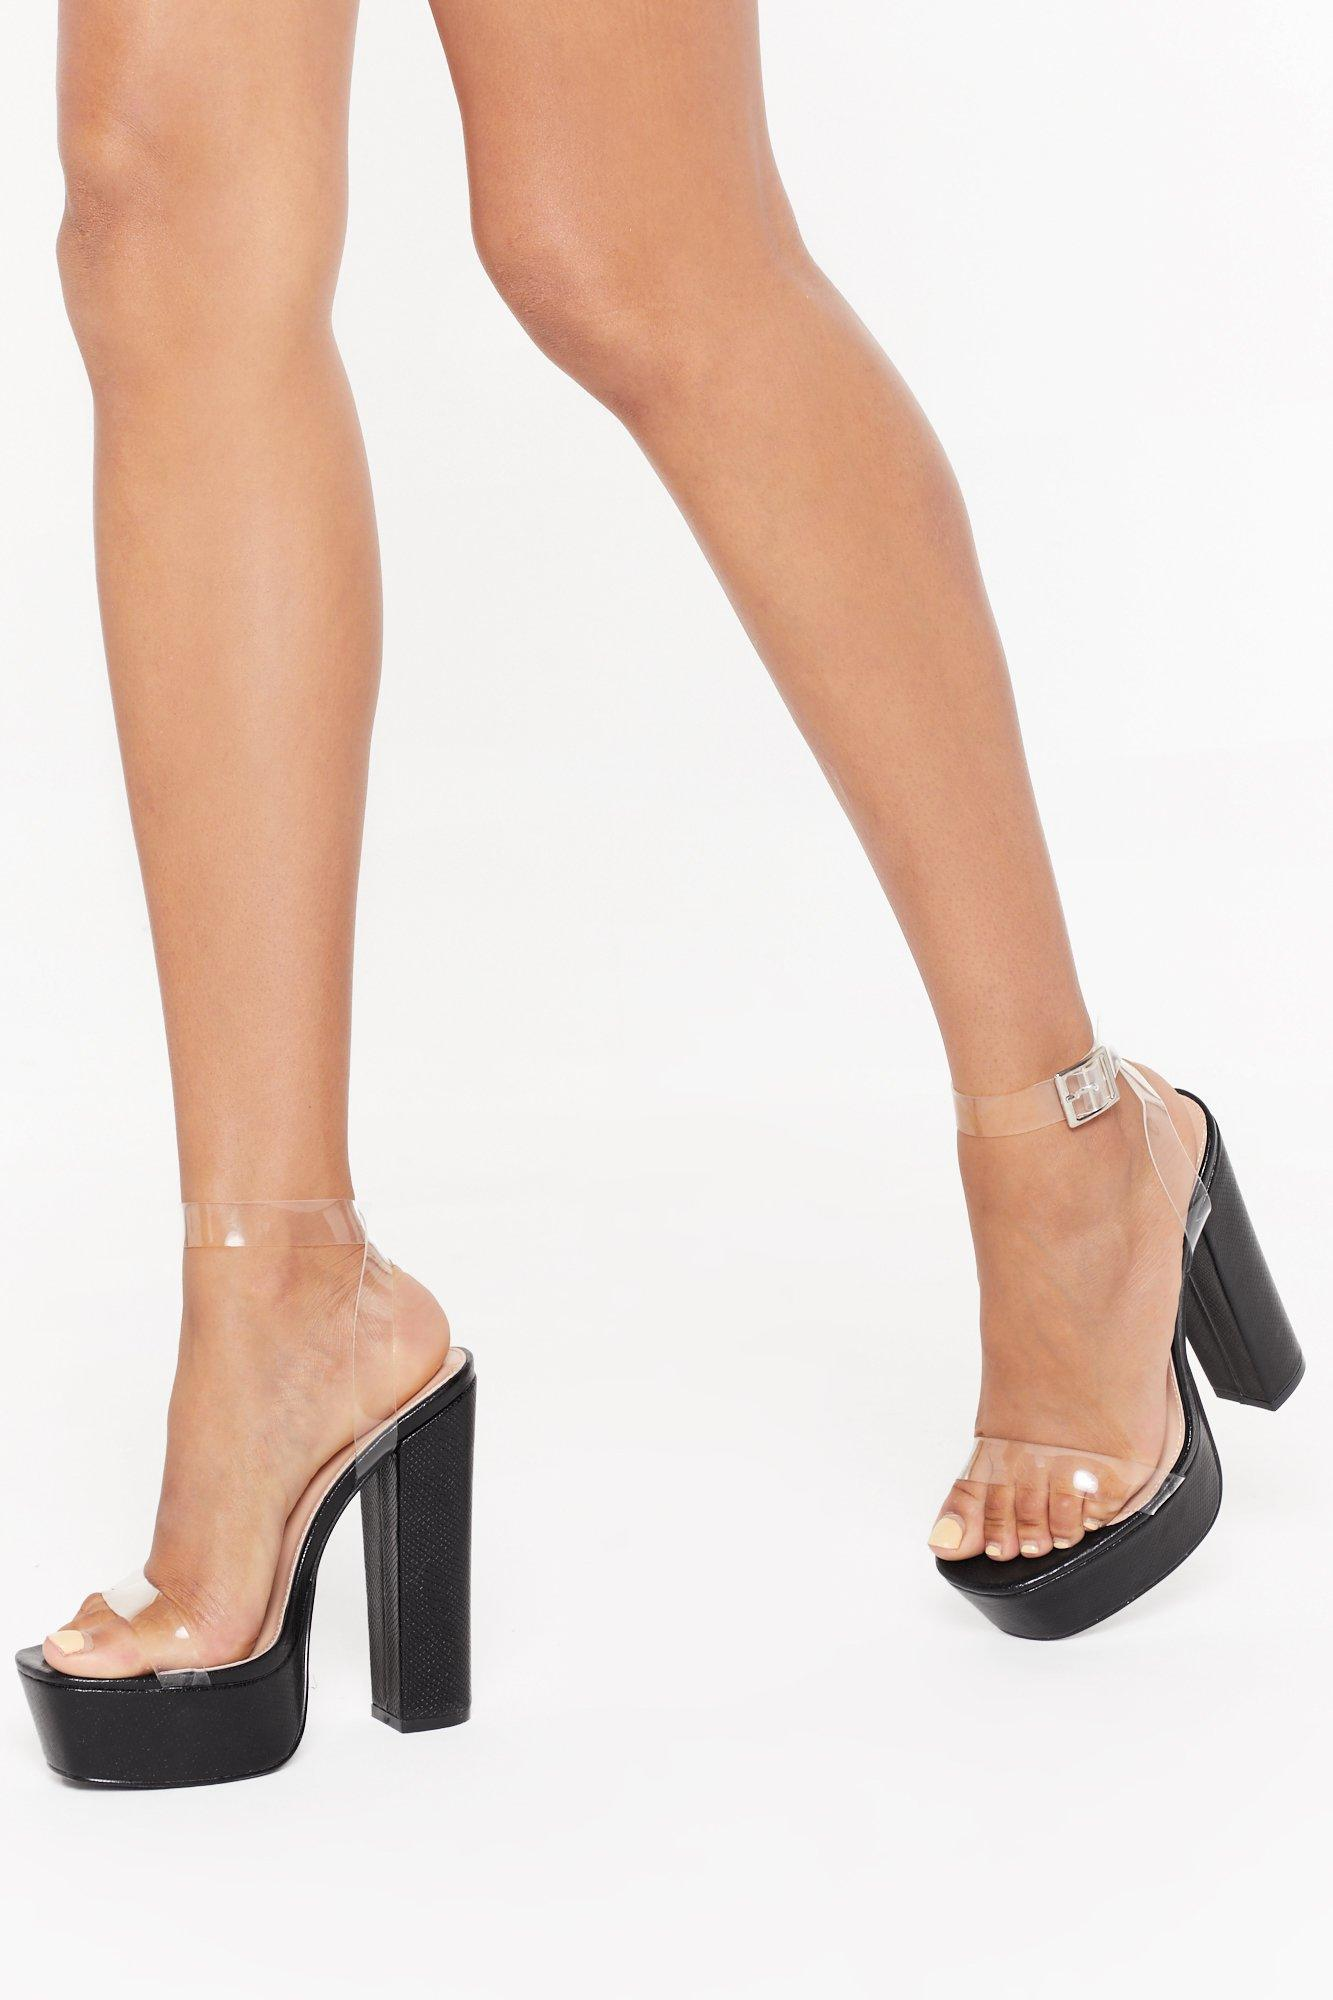 Image of Time to Clear the Air Faux Leather Platform Heels